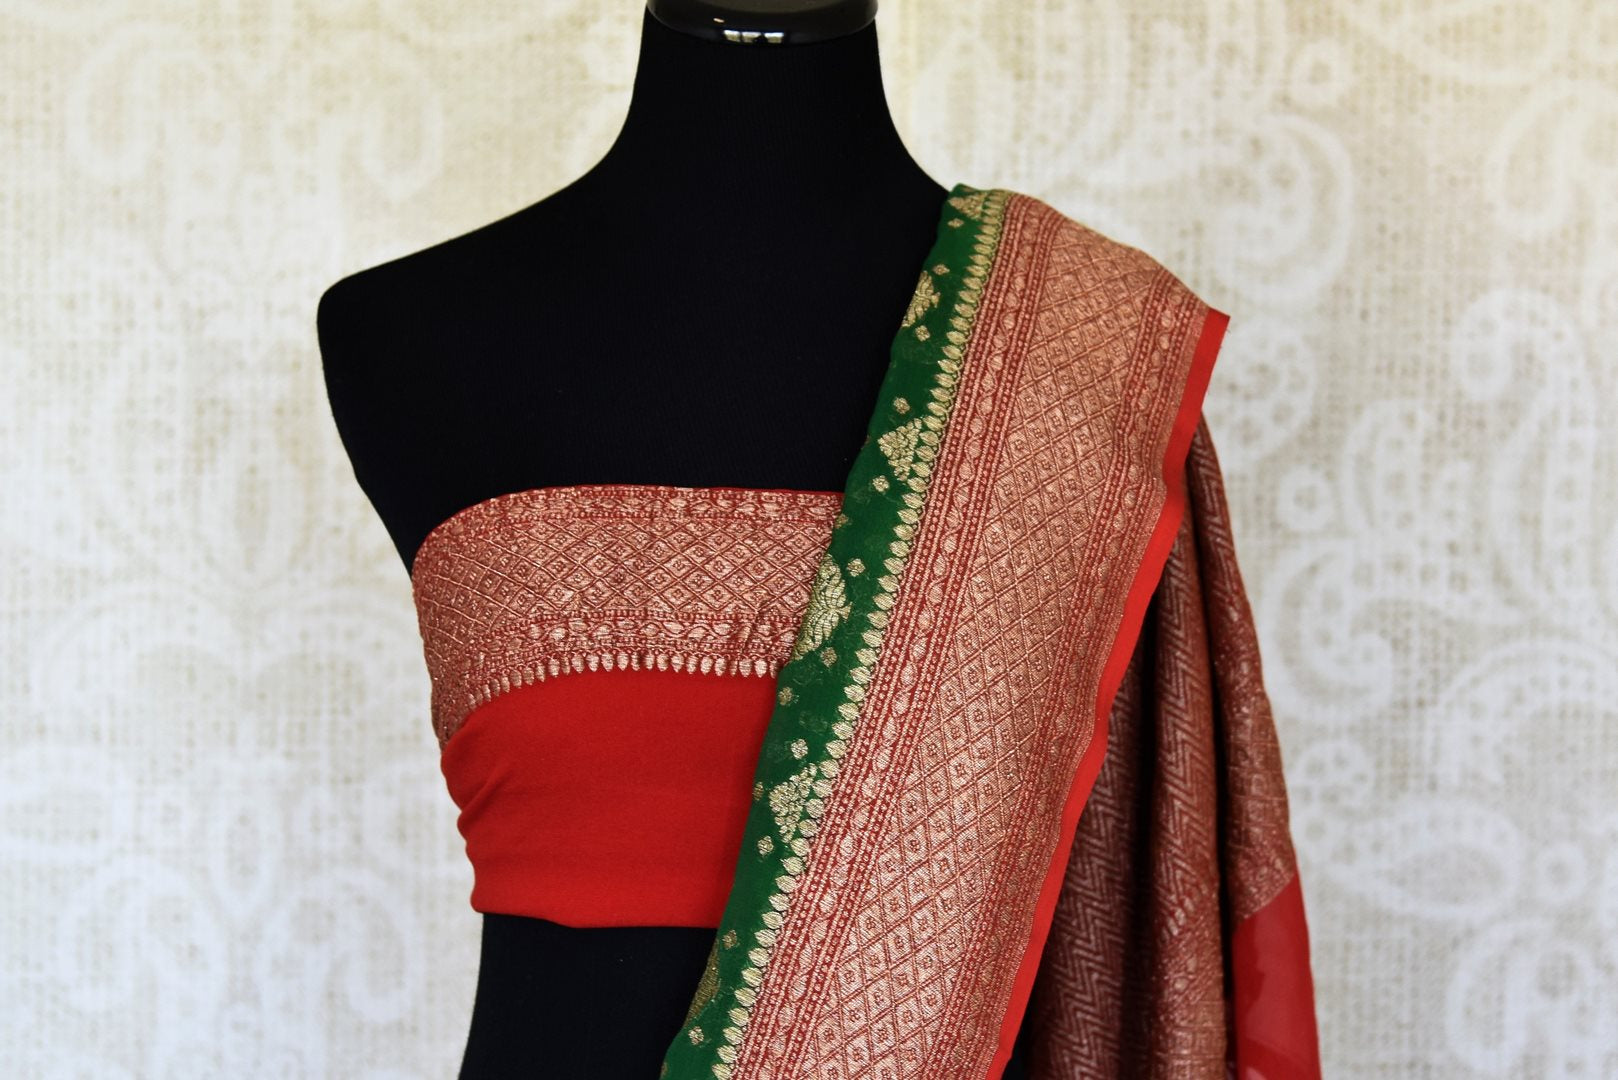 Shop green georgette Banarasi sari online in USA with red zari border. Feel traditional on special occasions in beautiful Indian designer saris from Pure Elegance Indian fashion store in USA. Choose from a splendid variety of Banarasi sarees, pure handwoven saris. Buy online.-blouse pallu